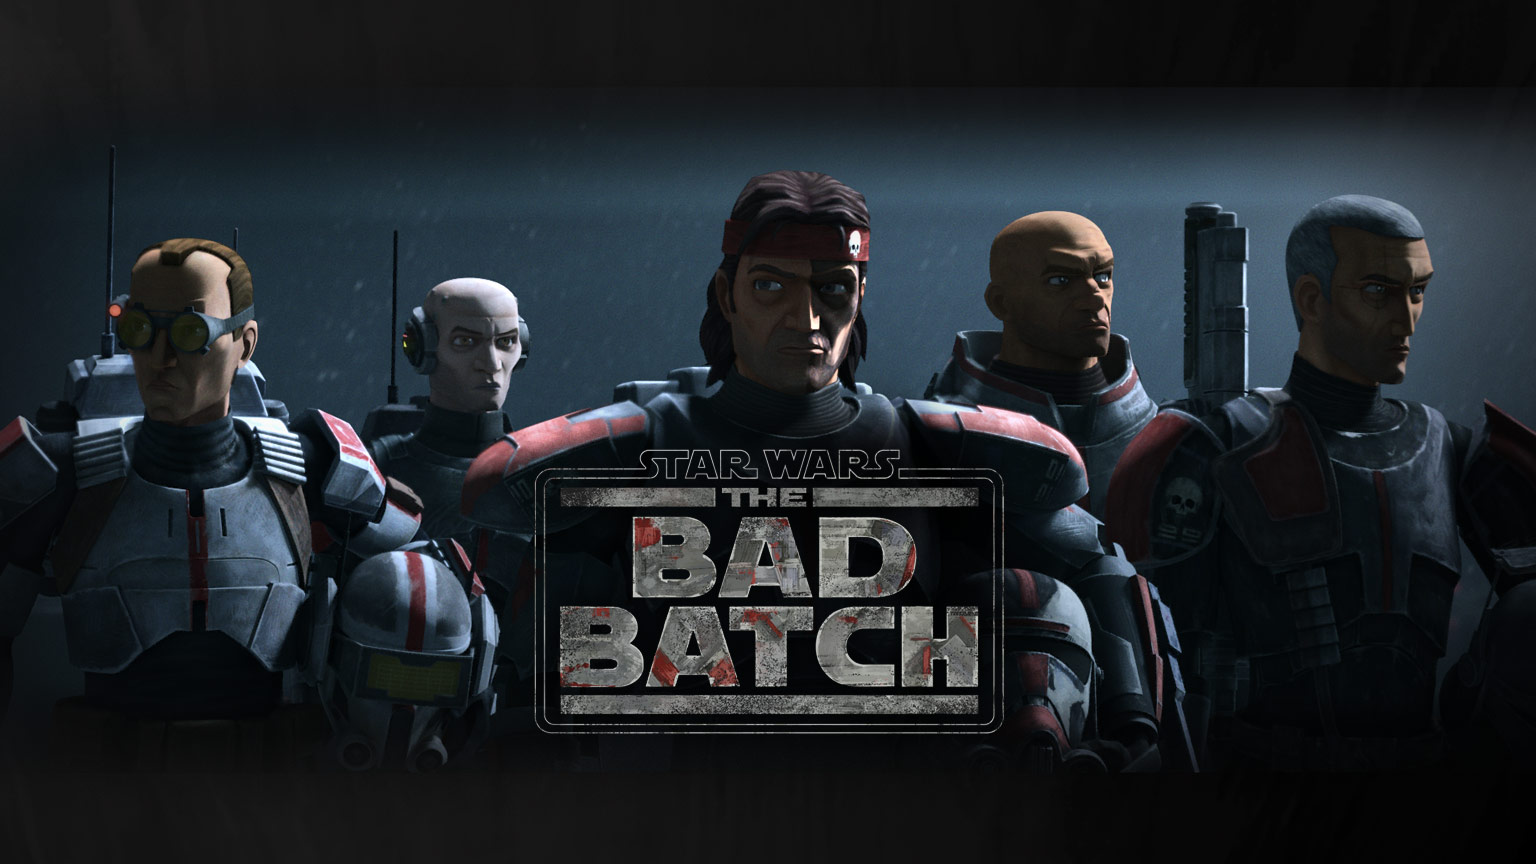 Star Wars: The Bad Batch Will Come to Disney+ on May the 4th | StarWars.com